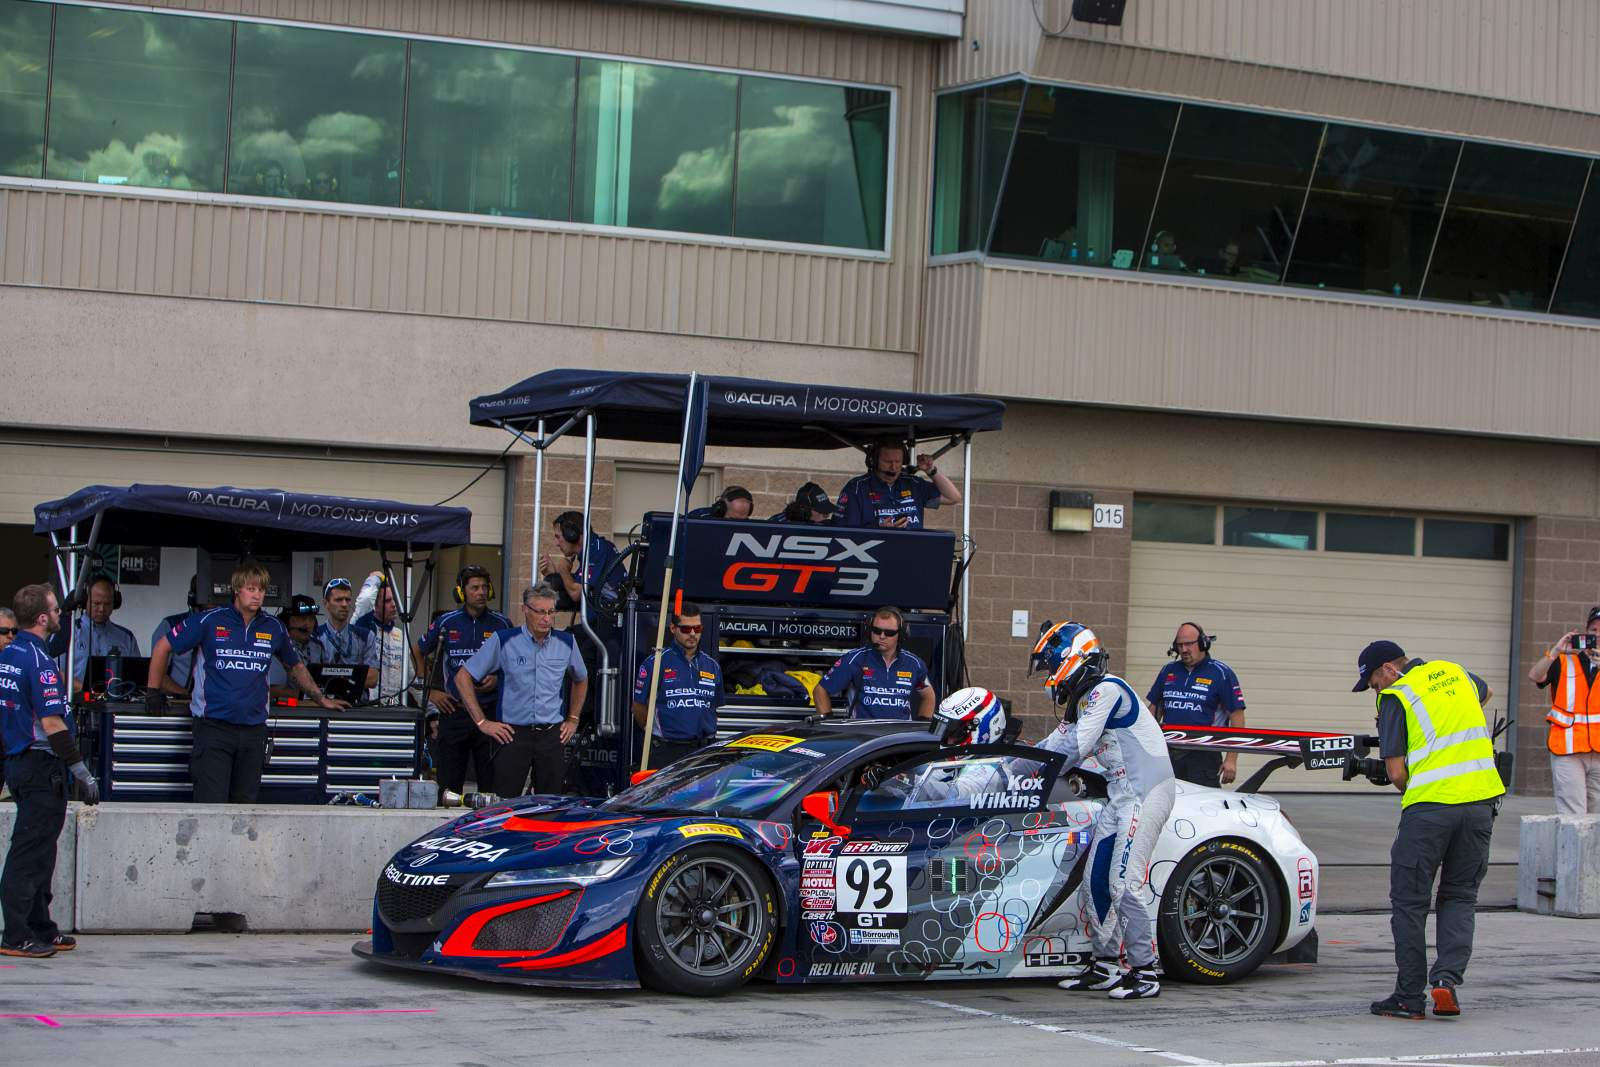 peter-kox-realtime-racing-pirelli-world-challenge-utah-motorsport-campus--154